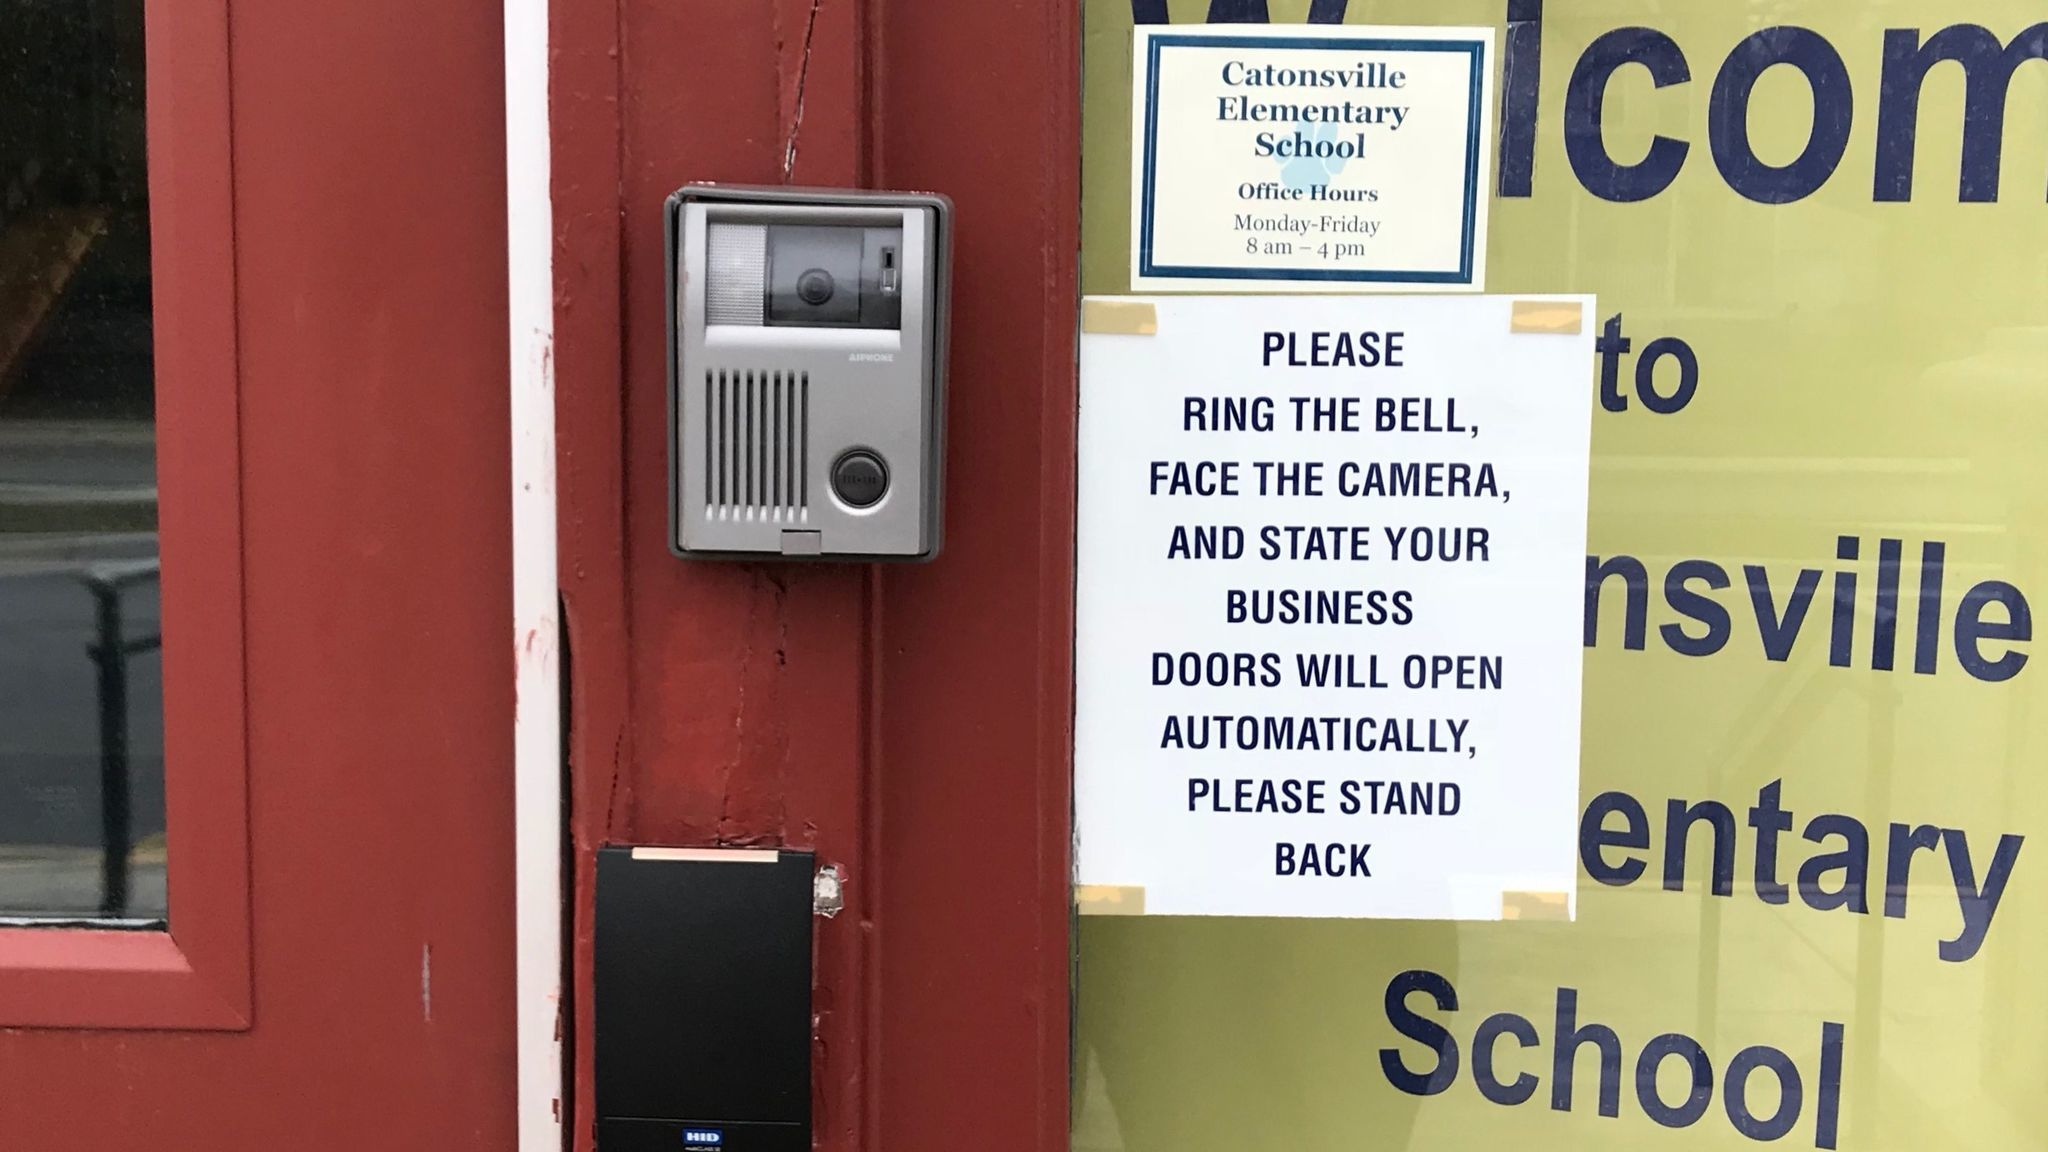 An entry buzzer with a camera is shown outside Catonsville Elementary School on Feb. 26, 2018.